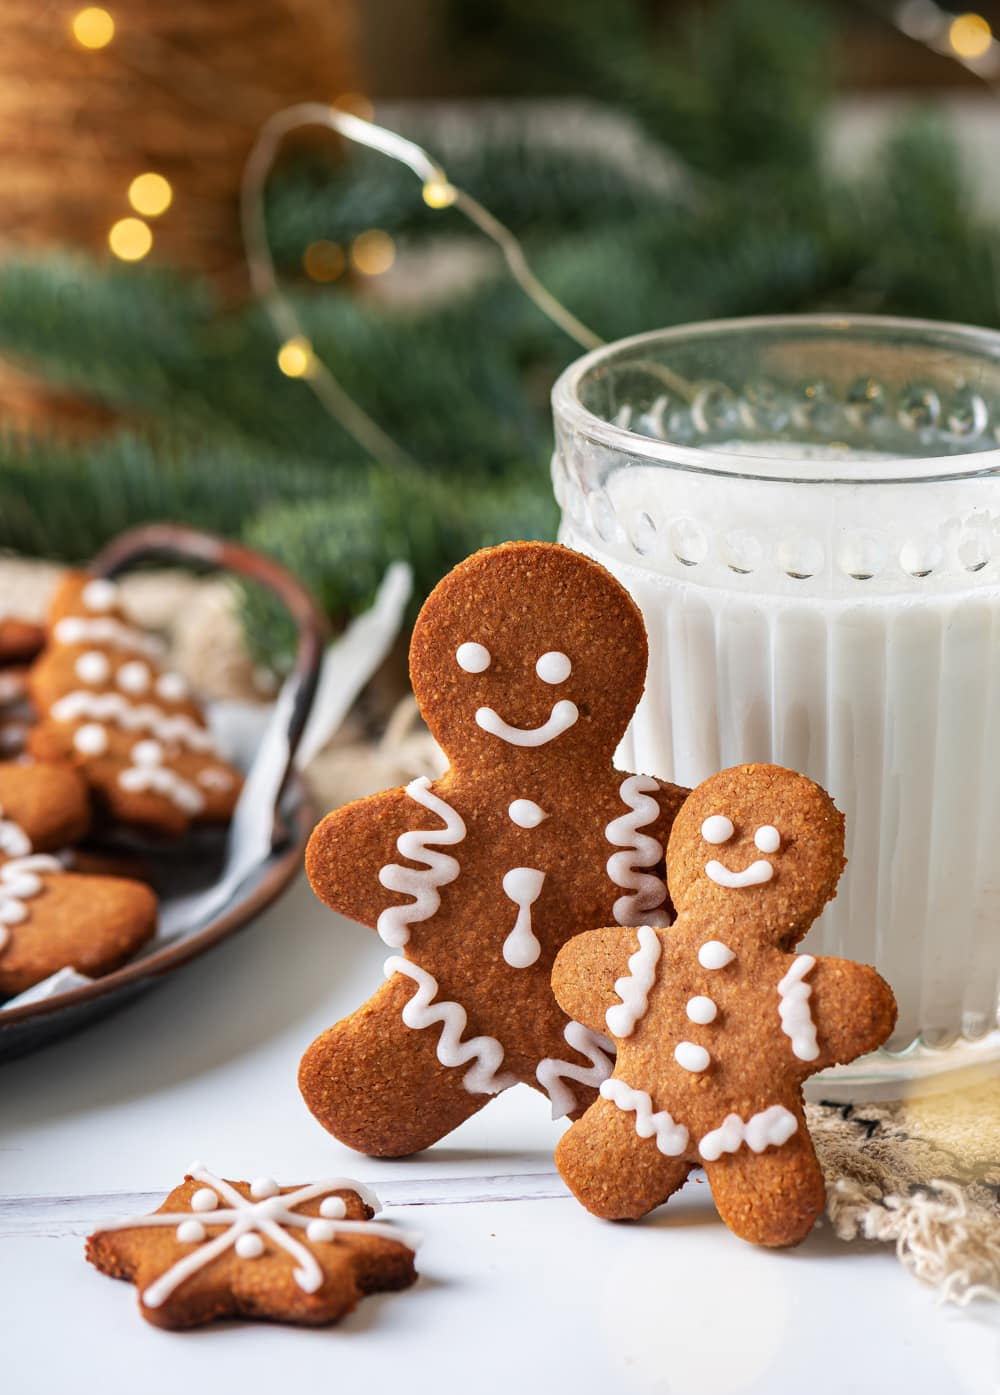 Two gingerbread cookies that are leaned against a glass of milk, with green pine branches and gold lights behind them.